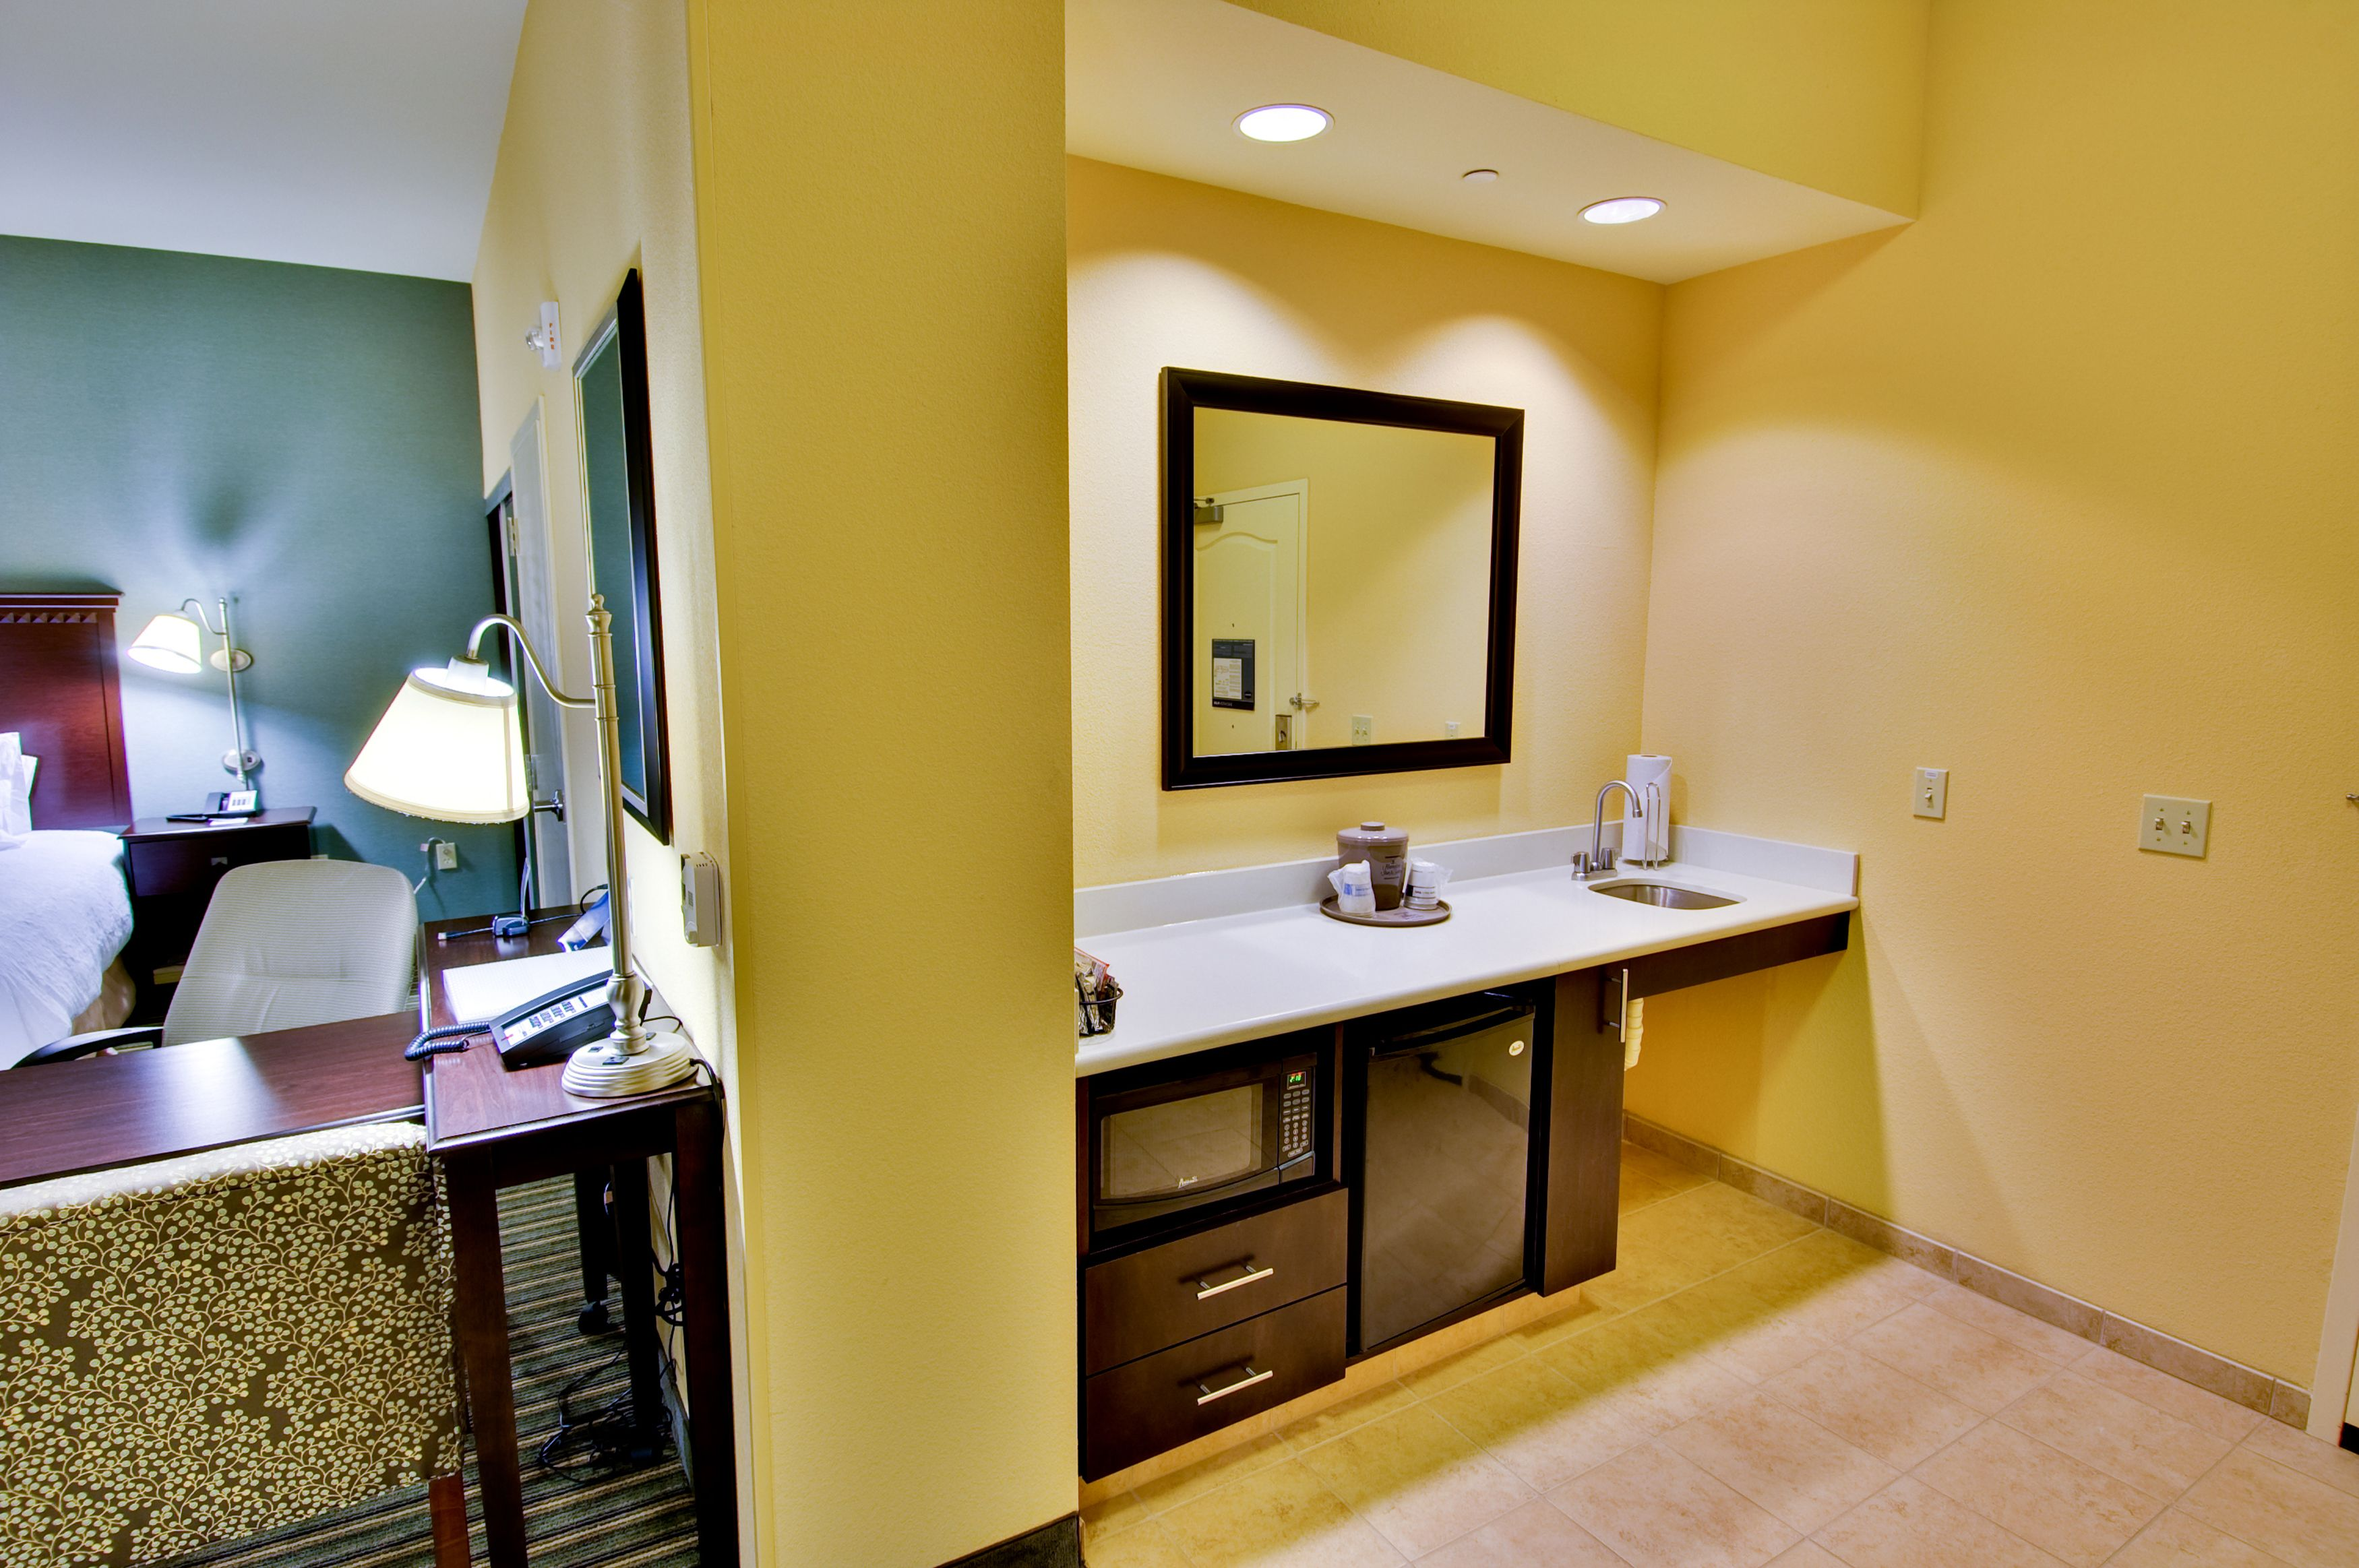 Take advantage of all the bennefits provided by our guest suites, including a petite kitchenette with microwave and mini fridge!